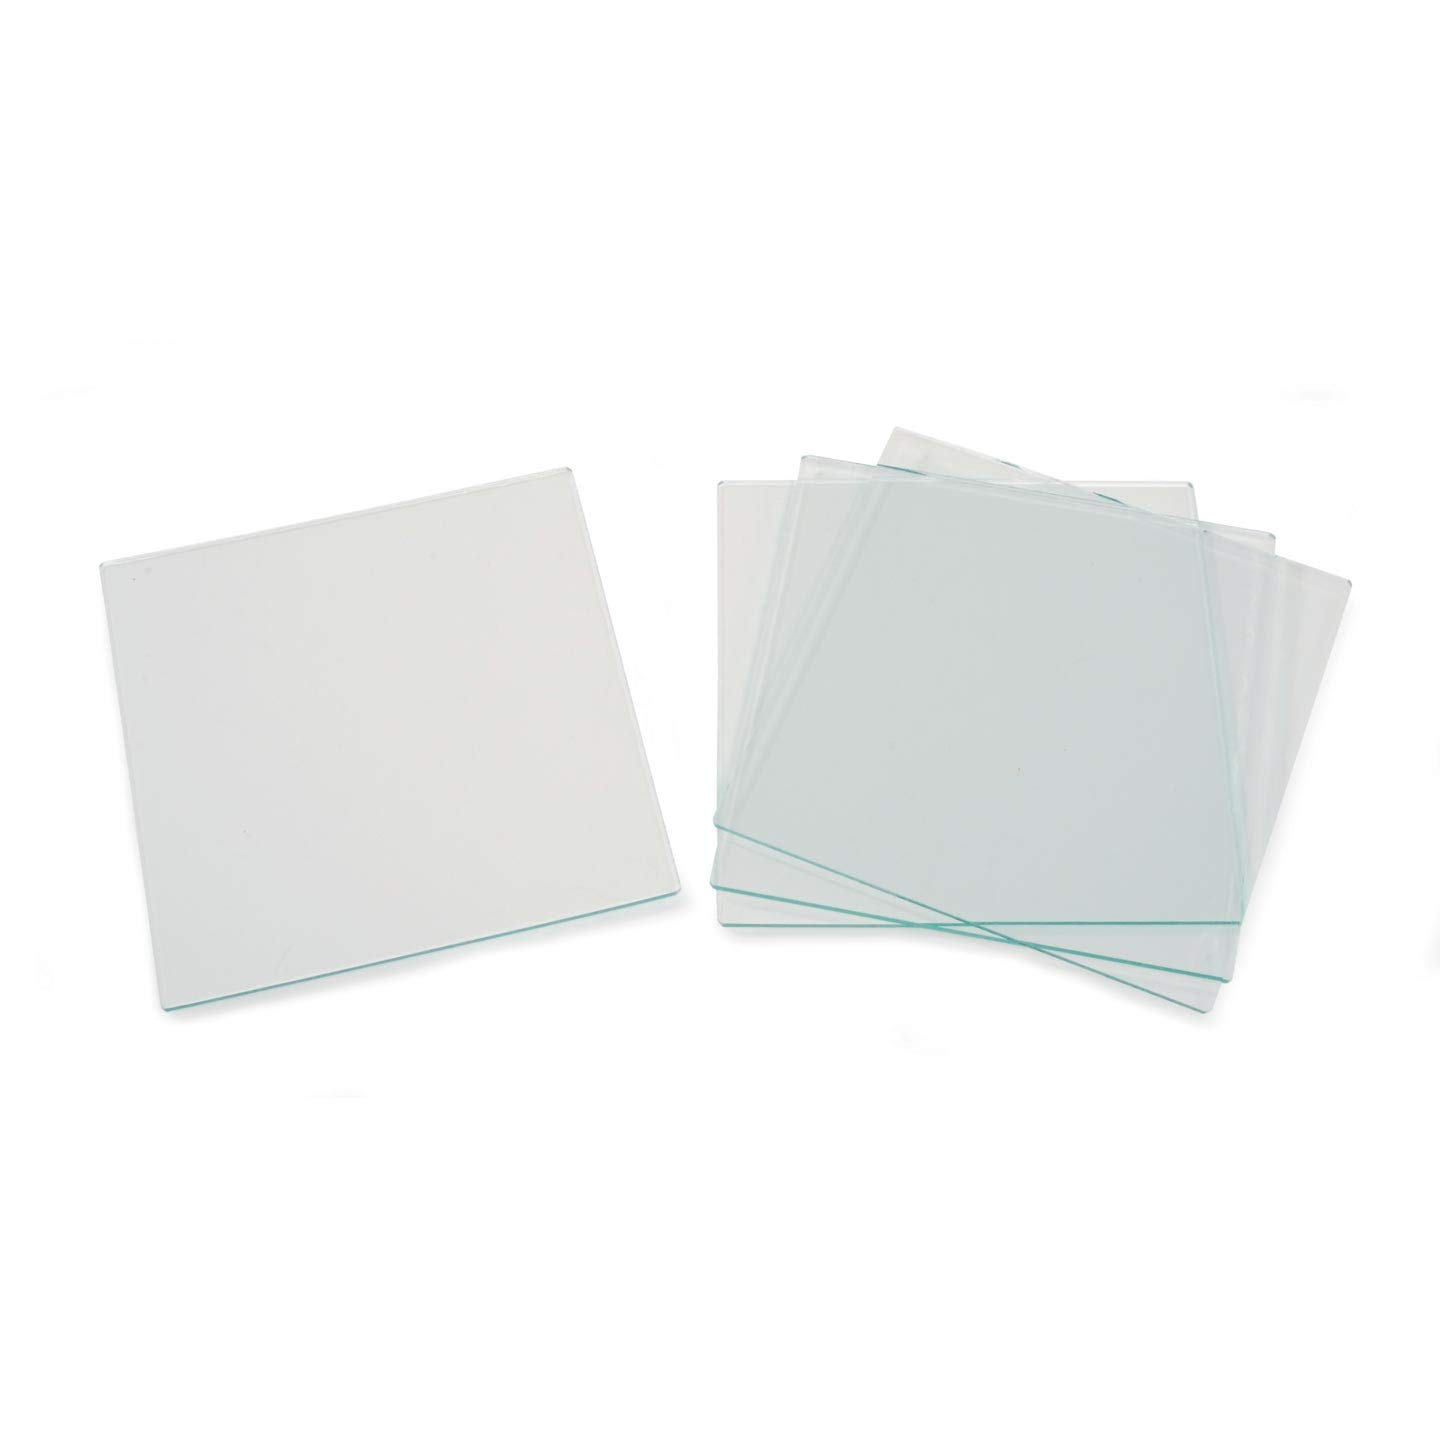 Bulk Buy 6-Pack Darice DIY Crafts Glass Tile Square 4 x 4 inches 4 pieces 1098-80